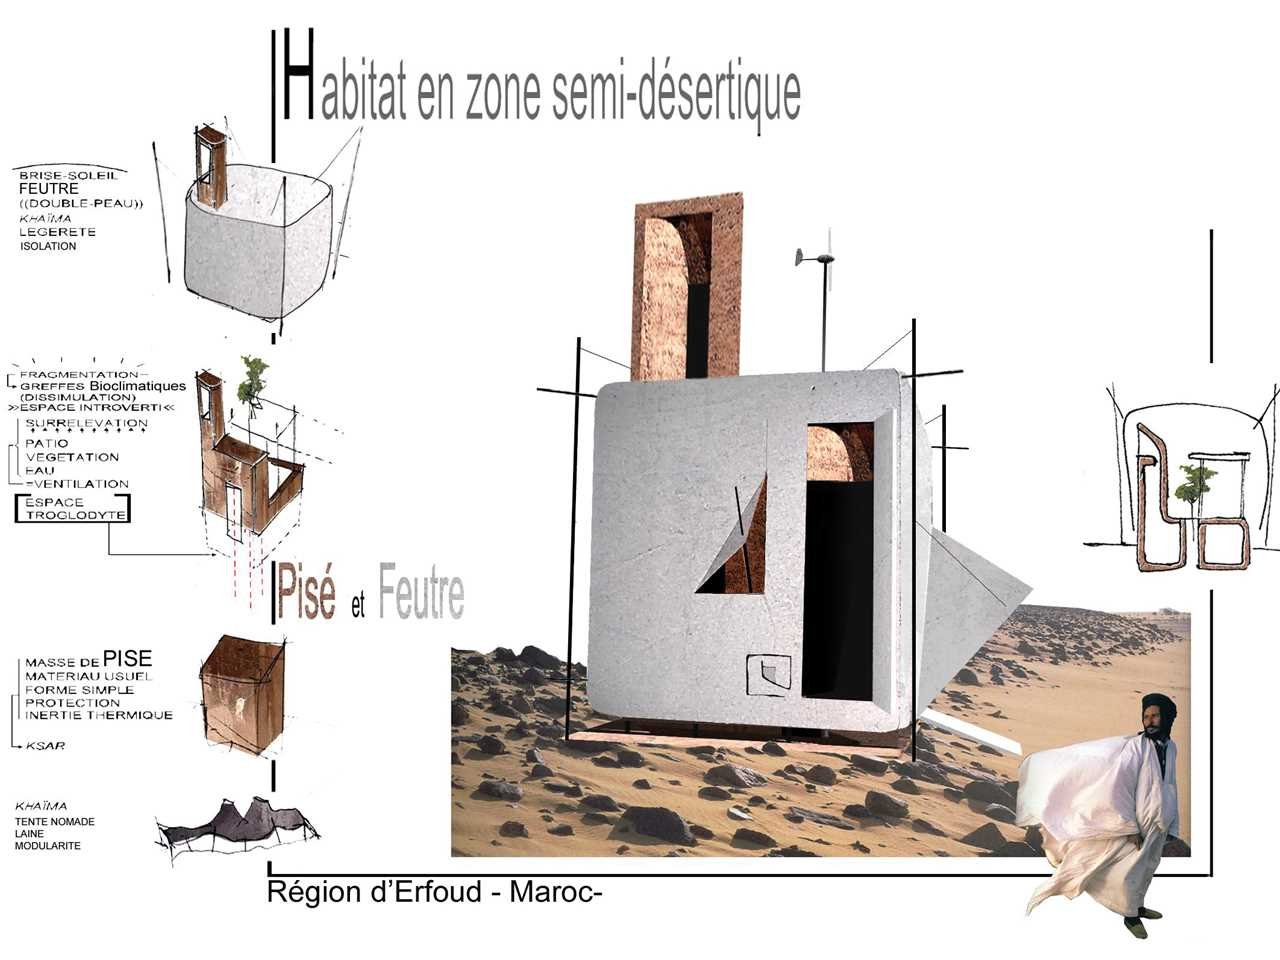 Project update June 2014 – Ecological dwelling in a semi-desert zone, near Tamanar, Morocco